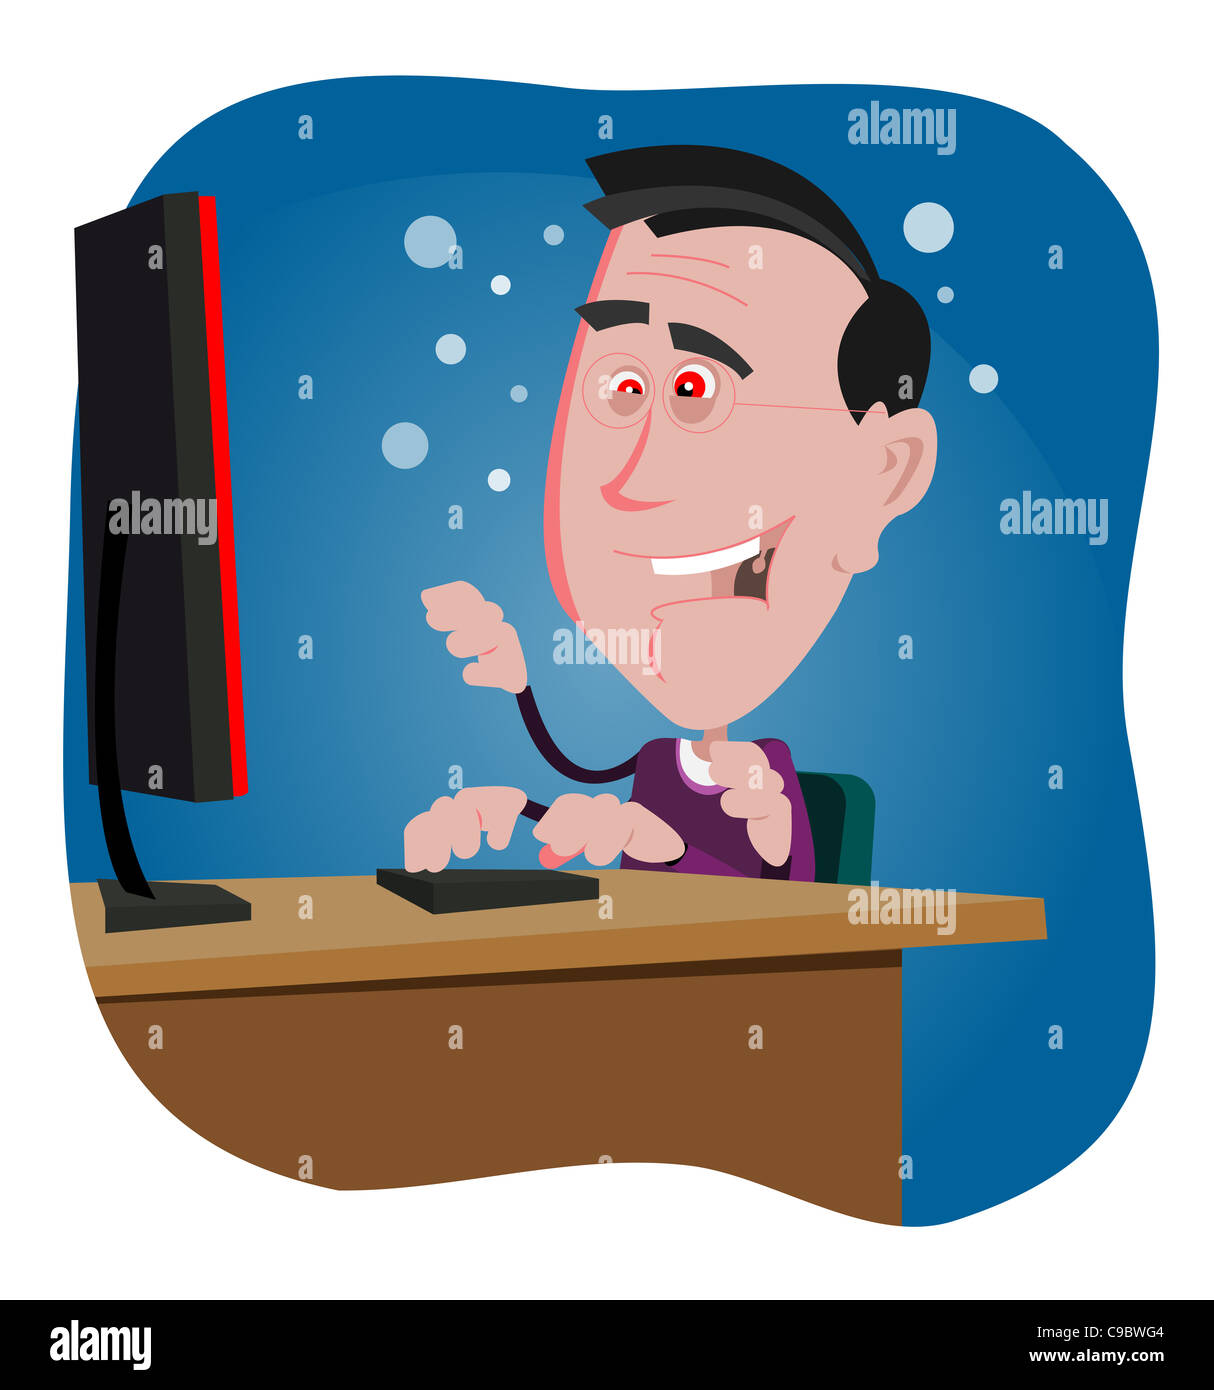 Illustration of a computer addicted cartoon man working in the night - Stock Image